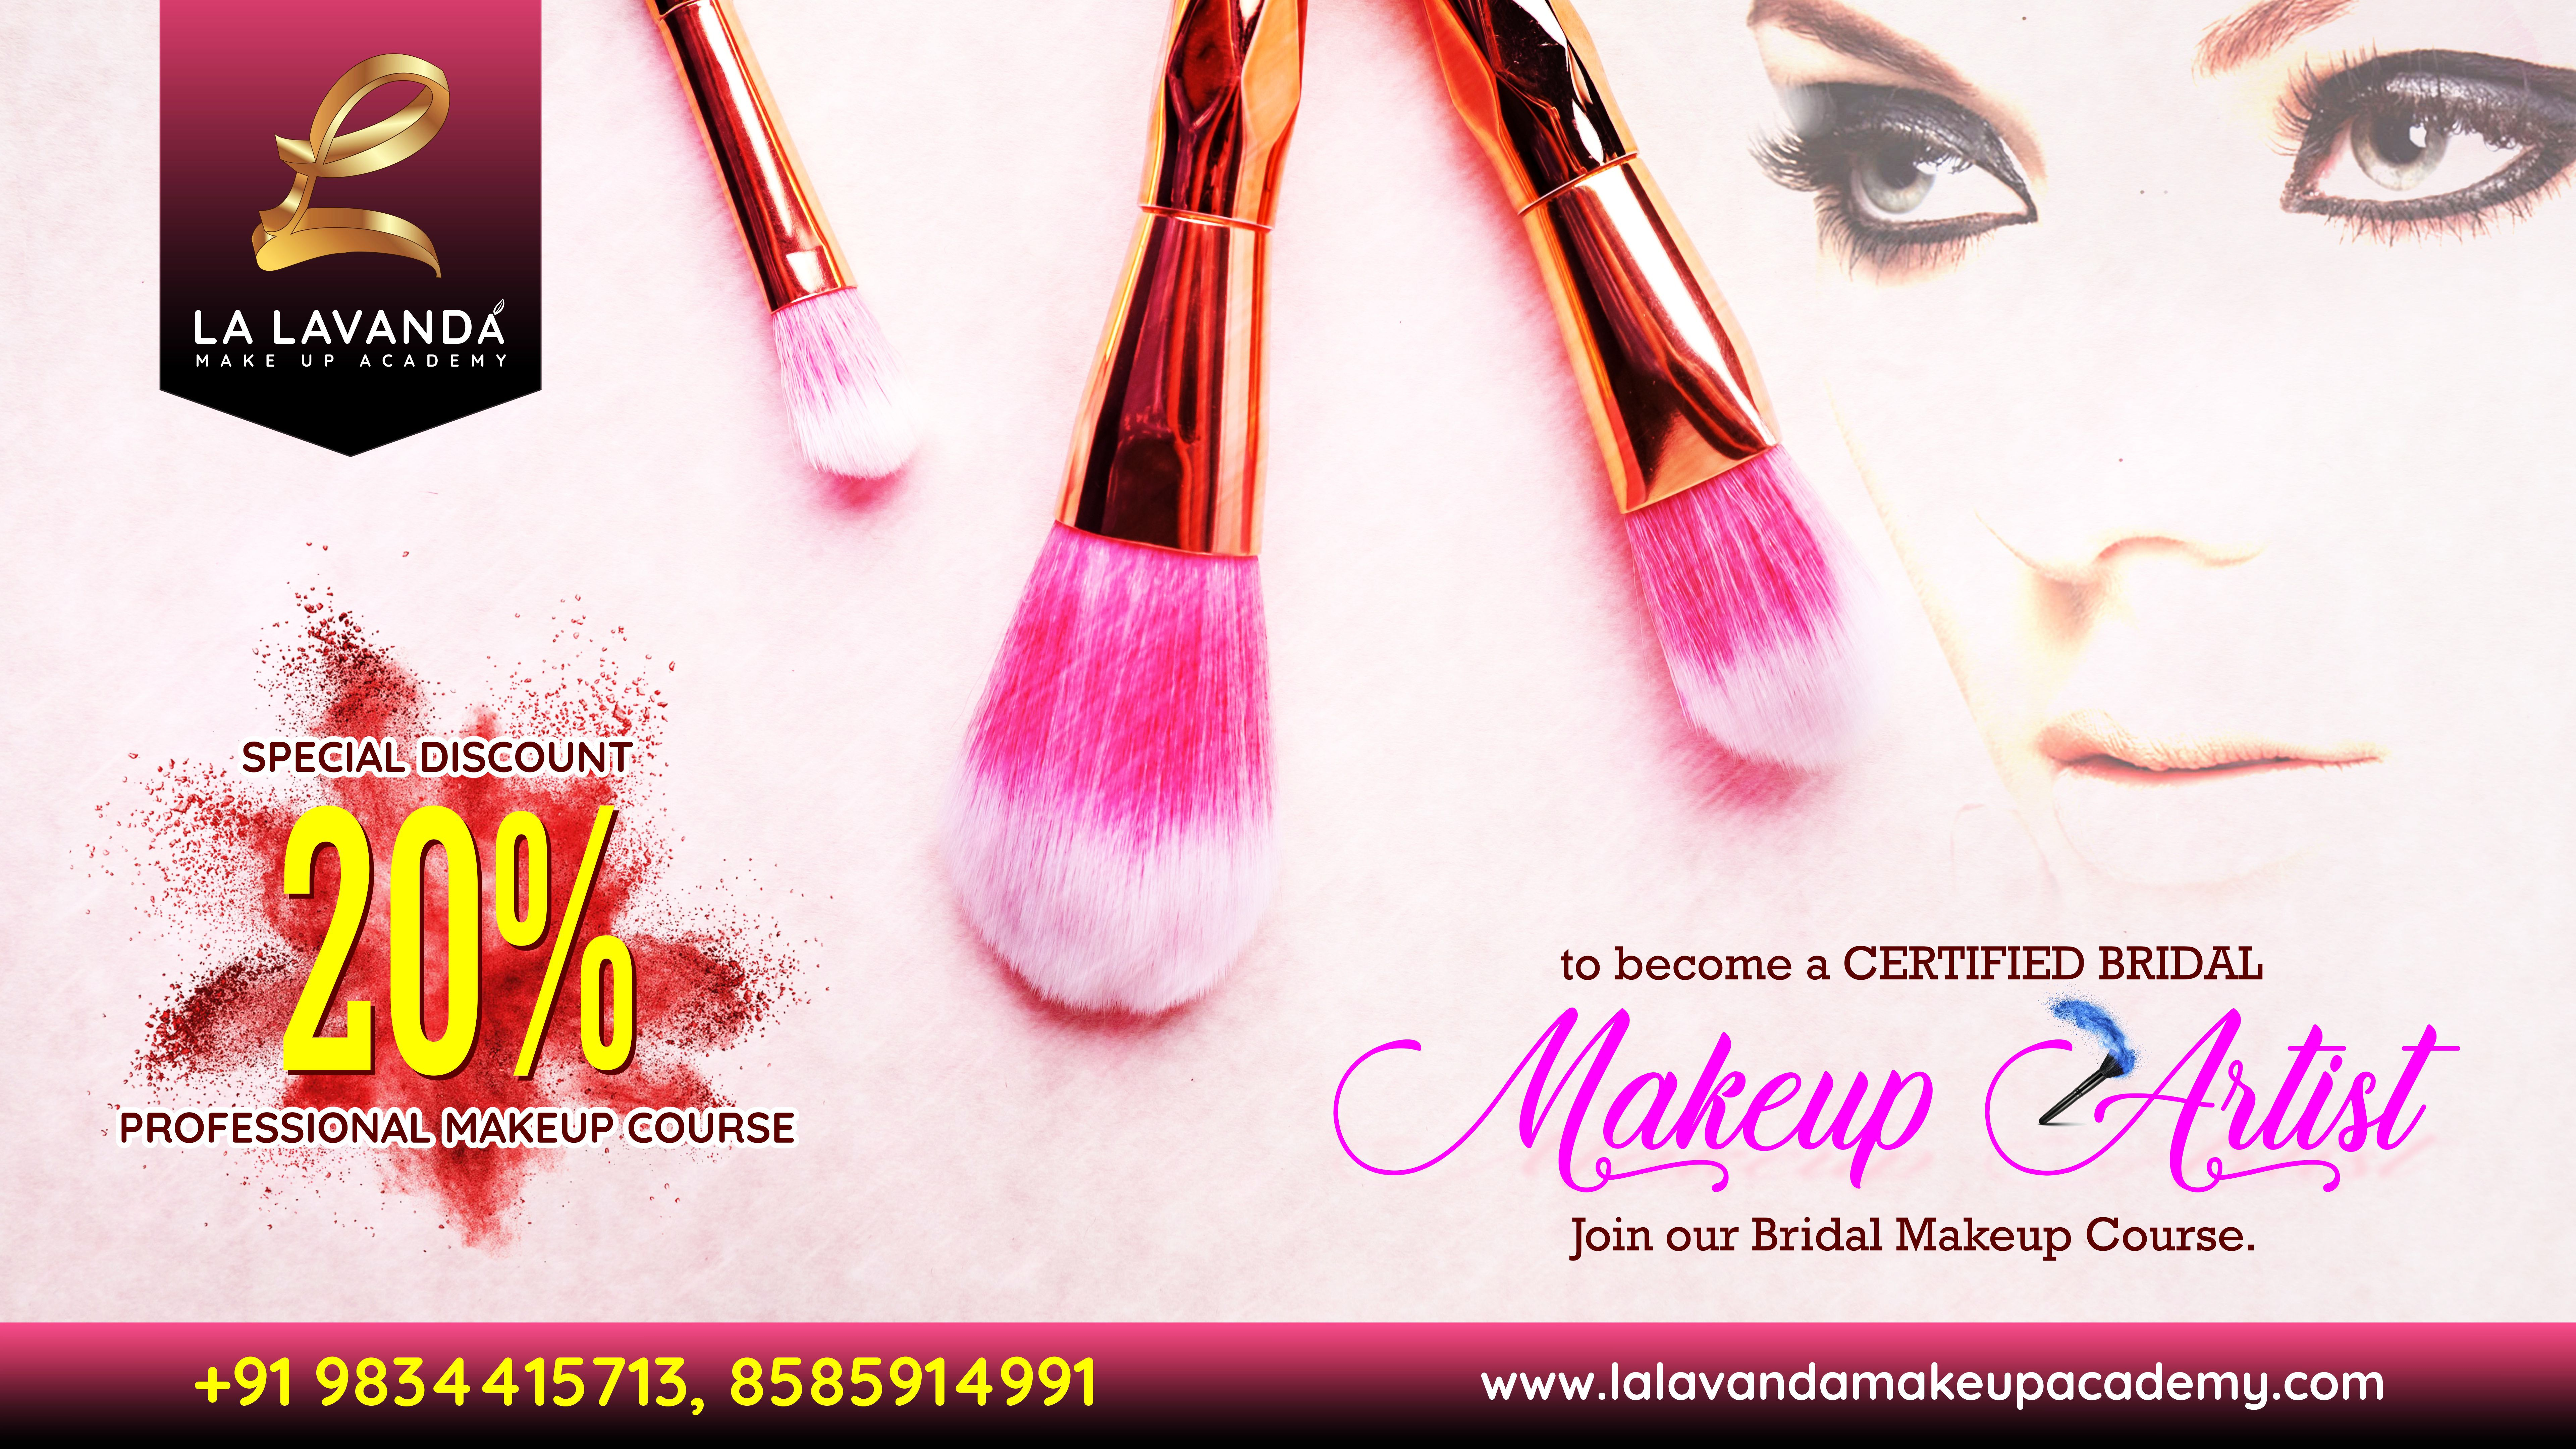 Get Celebrity Like Look With Our Trained And Dedicate Makeup